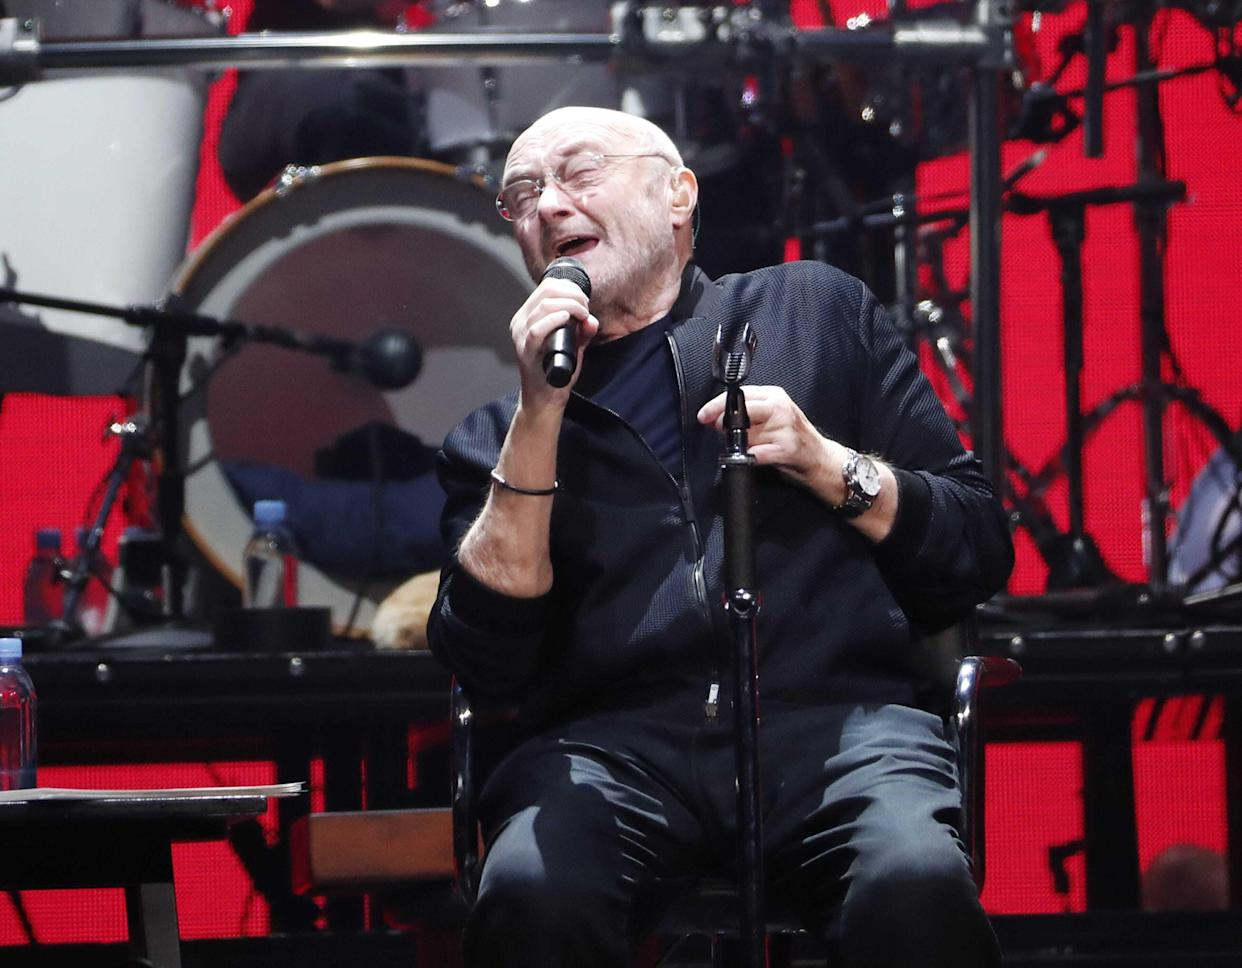 Phil Collins performs during his Not Dead Yet Tour at Talking Stick Resort Arena in Phoenix, Arizona on Oct. 15, 2019. Phil Collins (Photo by Michael Chow/Arizona Republic via Imagn Content Services, LLC/USA Today Network/Sipa USA)